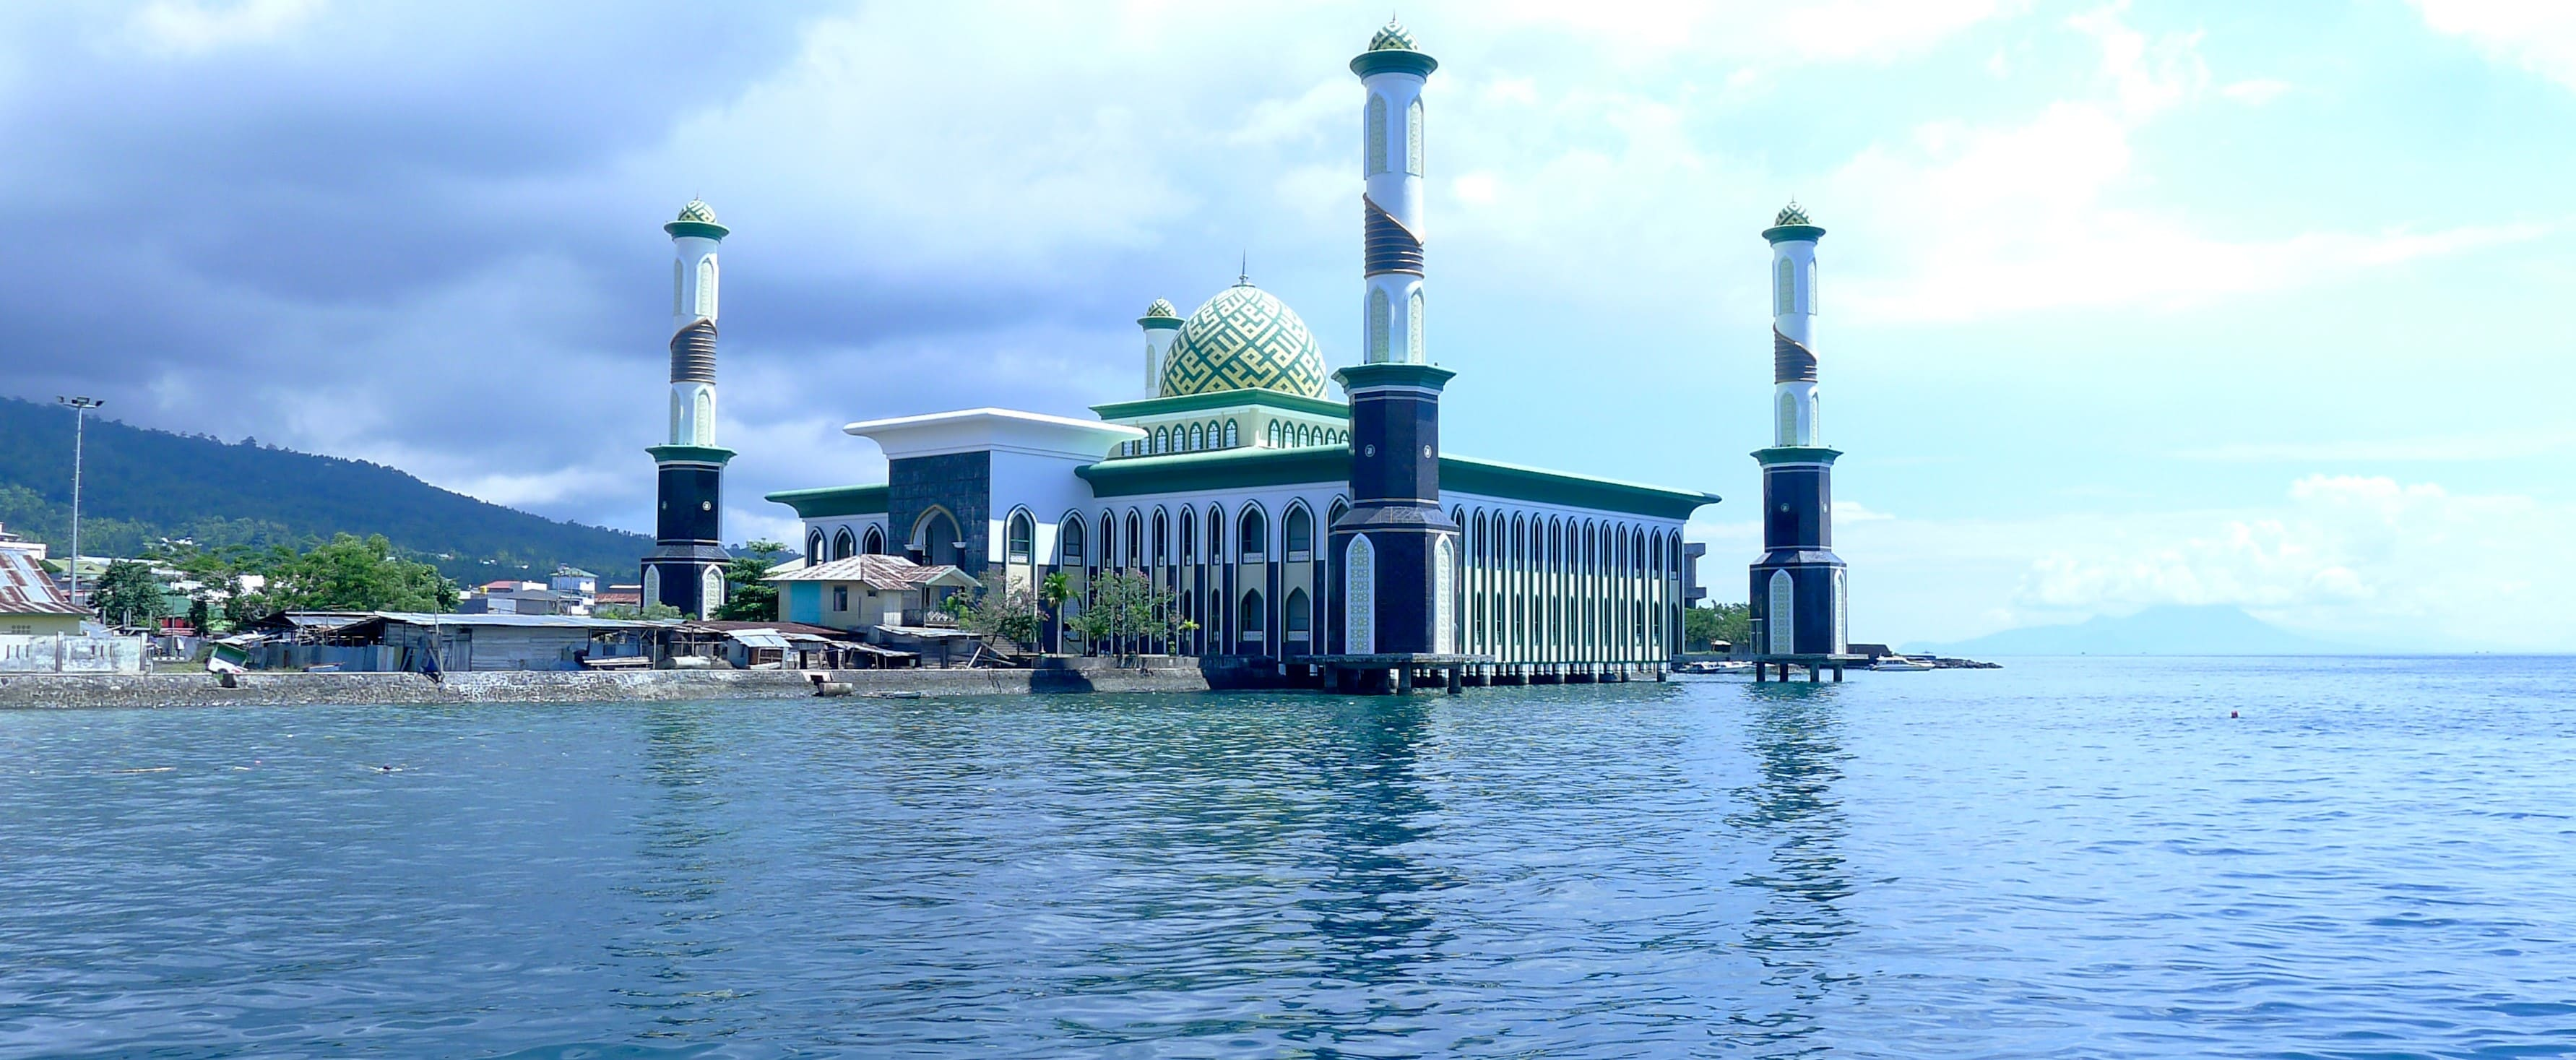 The Grand Mosque in Ternate in 2011, still with all four minarets (Photo: Marcel Holyoak/Flickr)